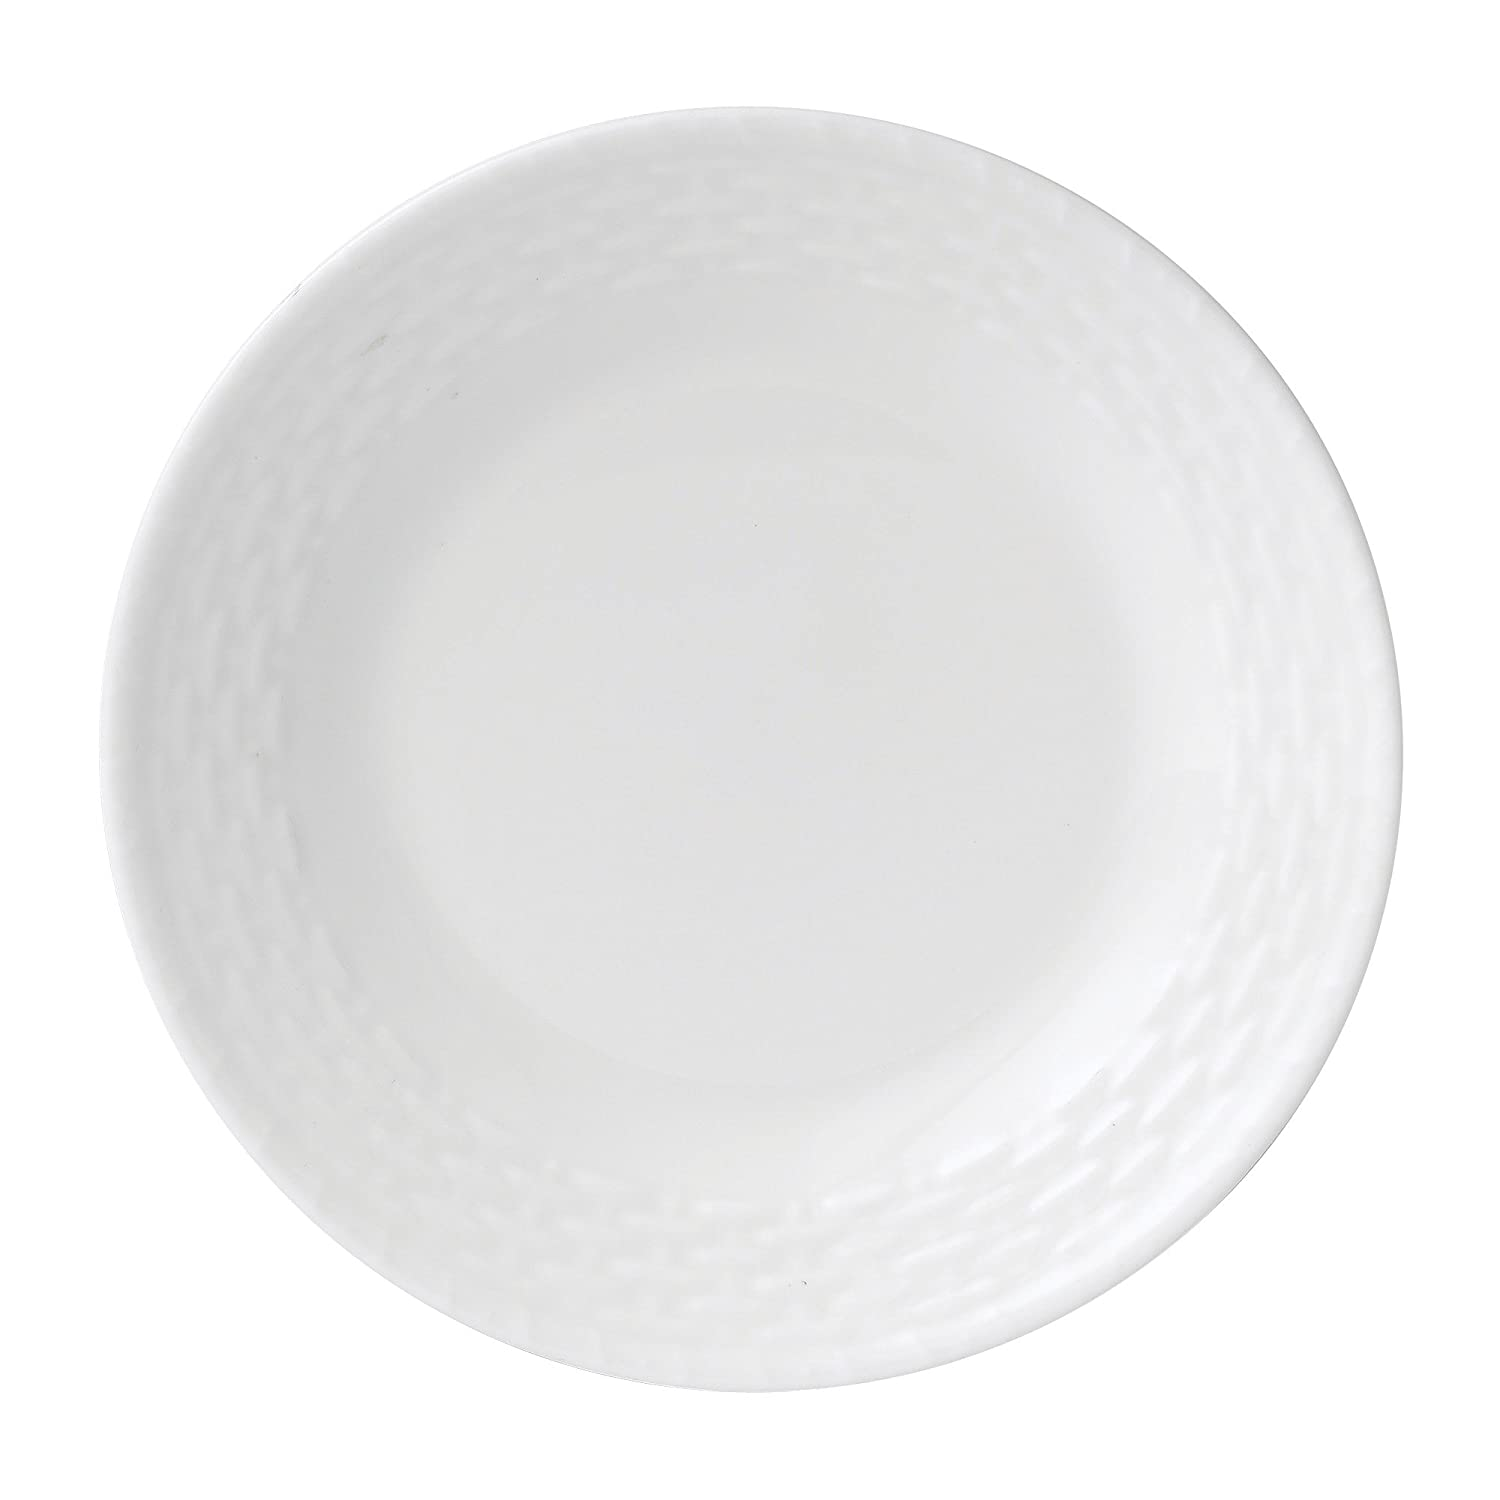 Wedgwood 6.25-in. Nantucket Basket Bread and Butter Plate Barrons Heslops 50156201183 DFBD WWCNBK 016